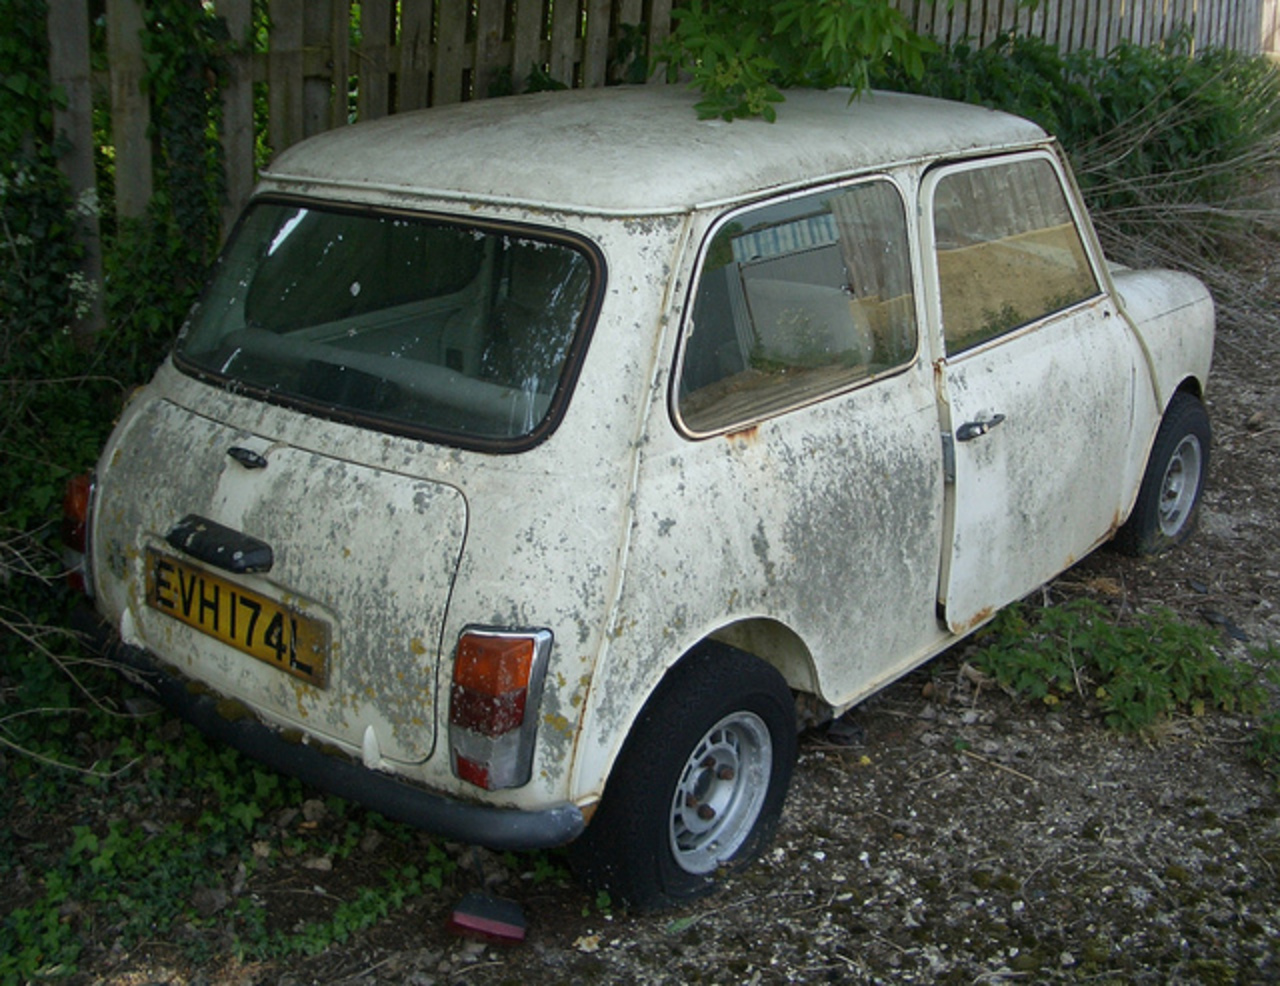 1972 Morris Mini 850 - in white & mould | Flickr - Photo Sharing!